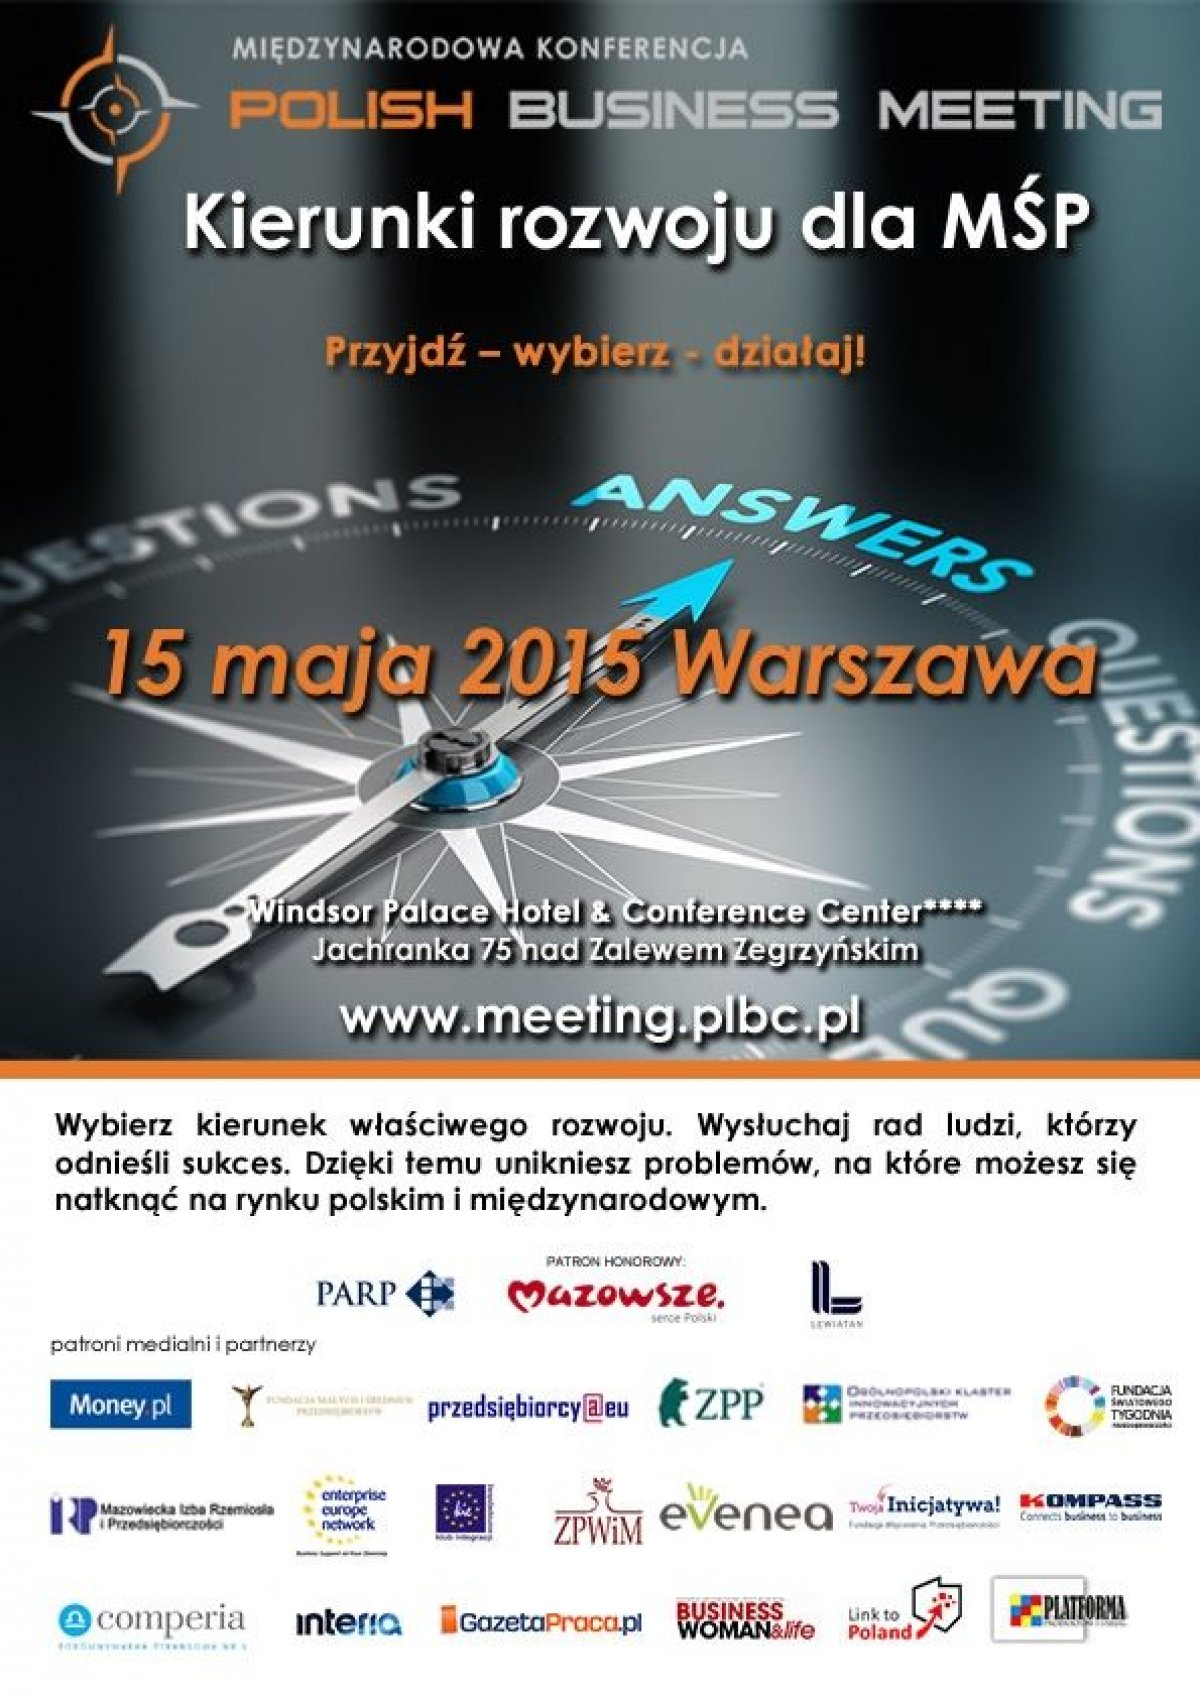 Polish Business Meeting już za nami